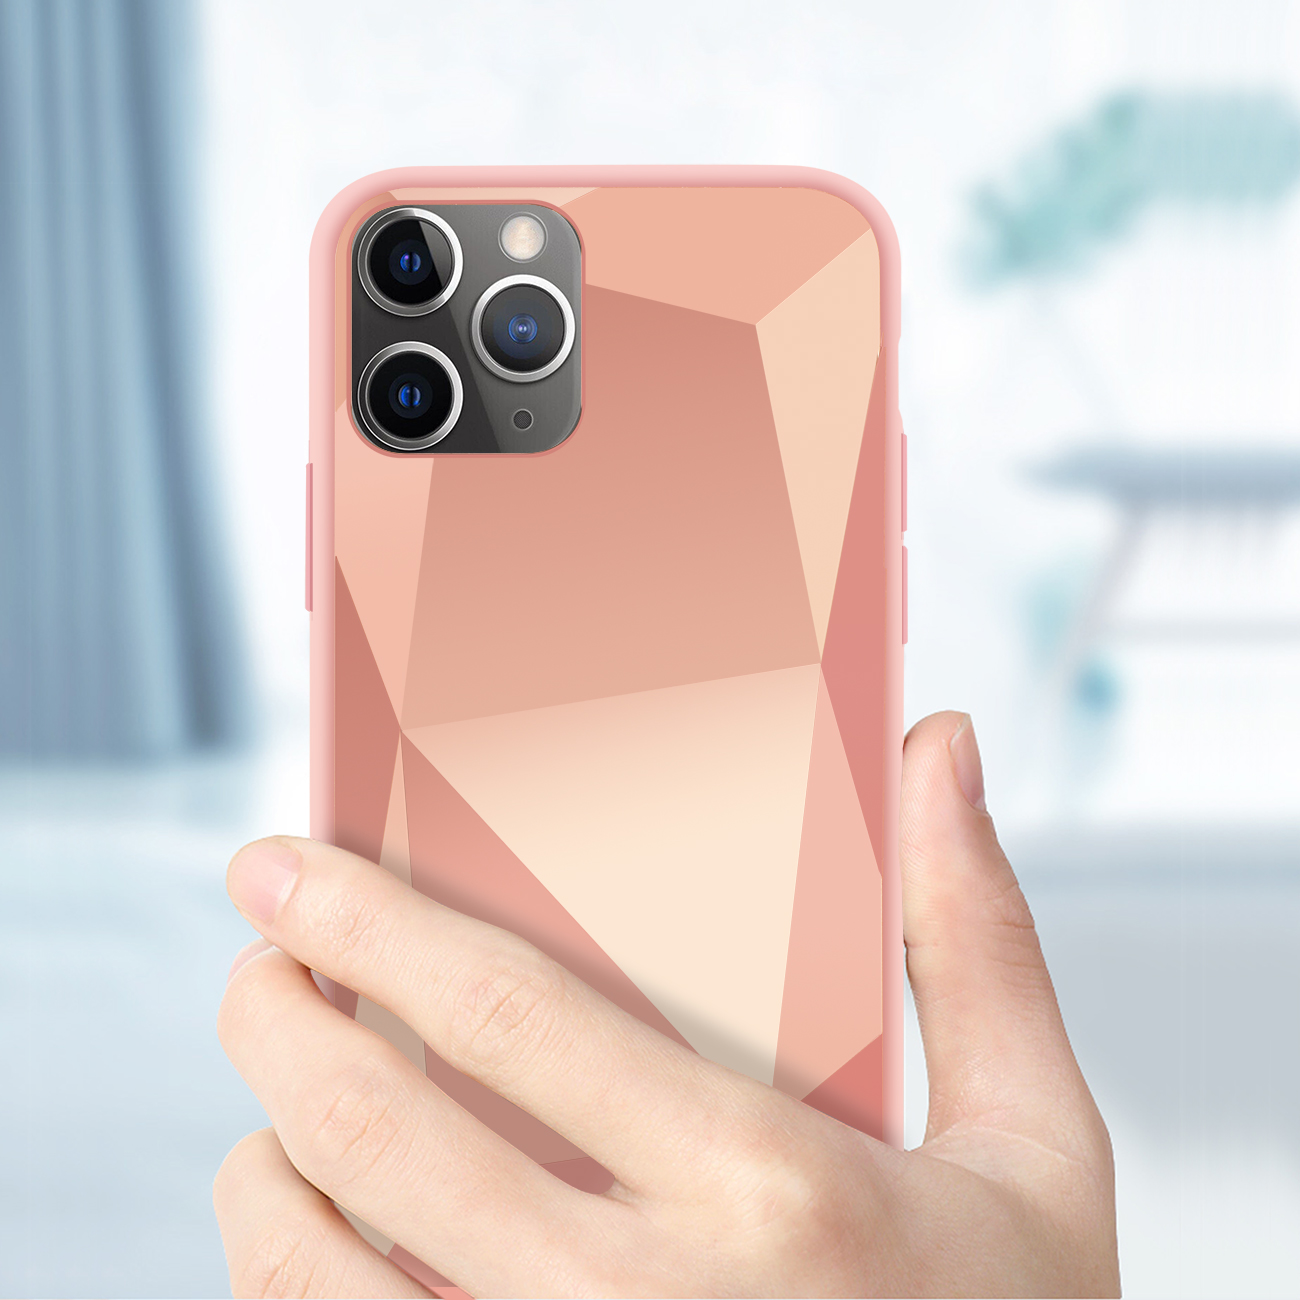 Apple iPhone 11 Pro Max Apple Diamond Cases In Rose Gold